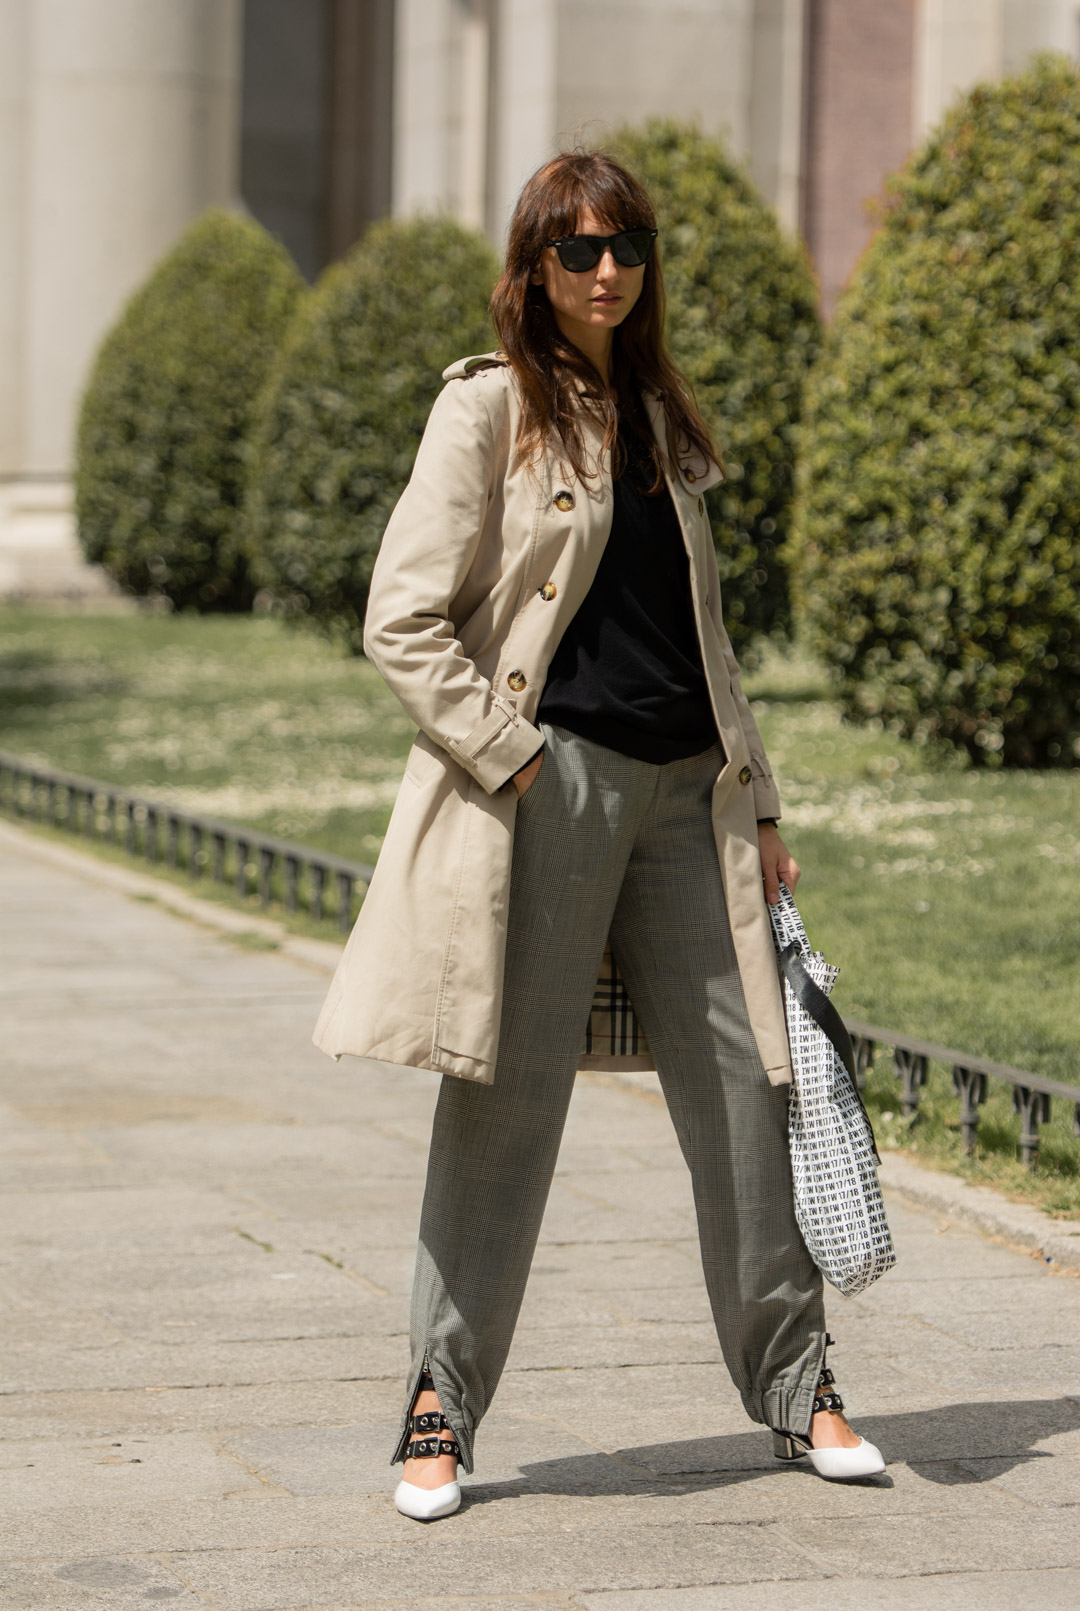 mayte-street-style-burberry-web-09